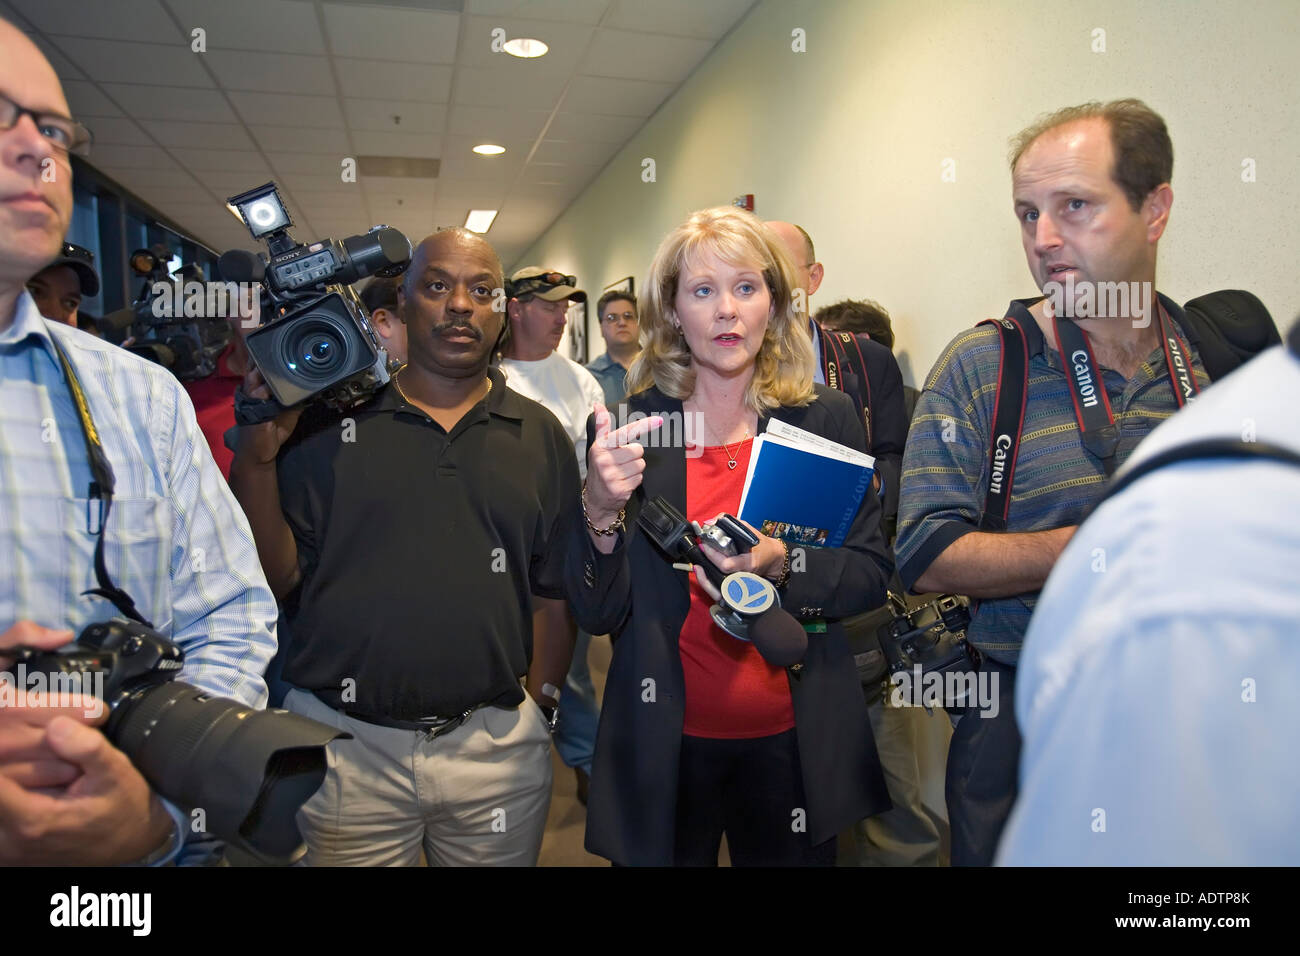 Journalists Await Beginning of UAW-Chrysler Contract Talks - Stock Image